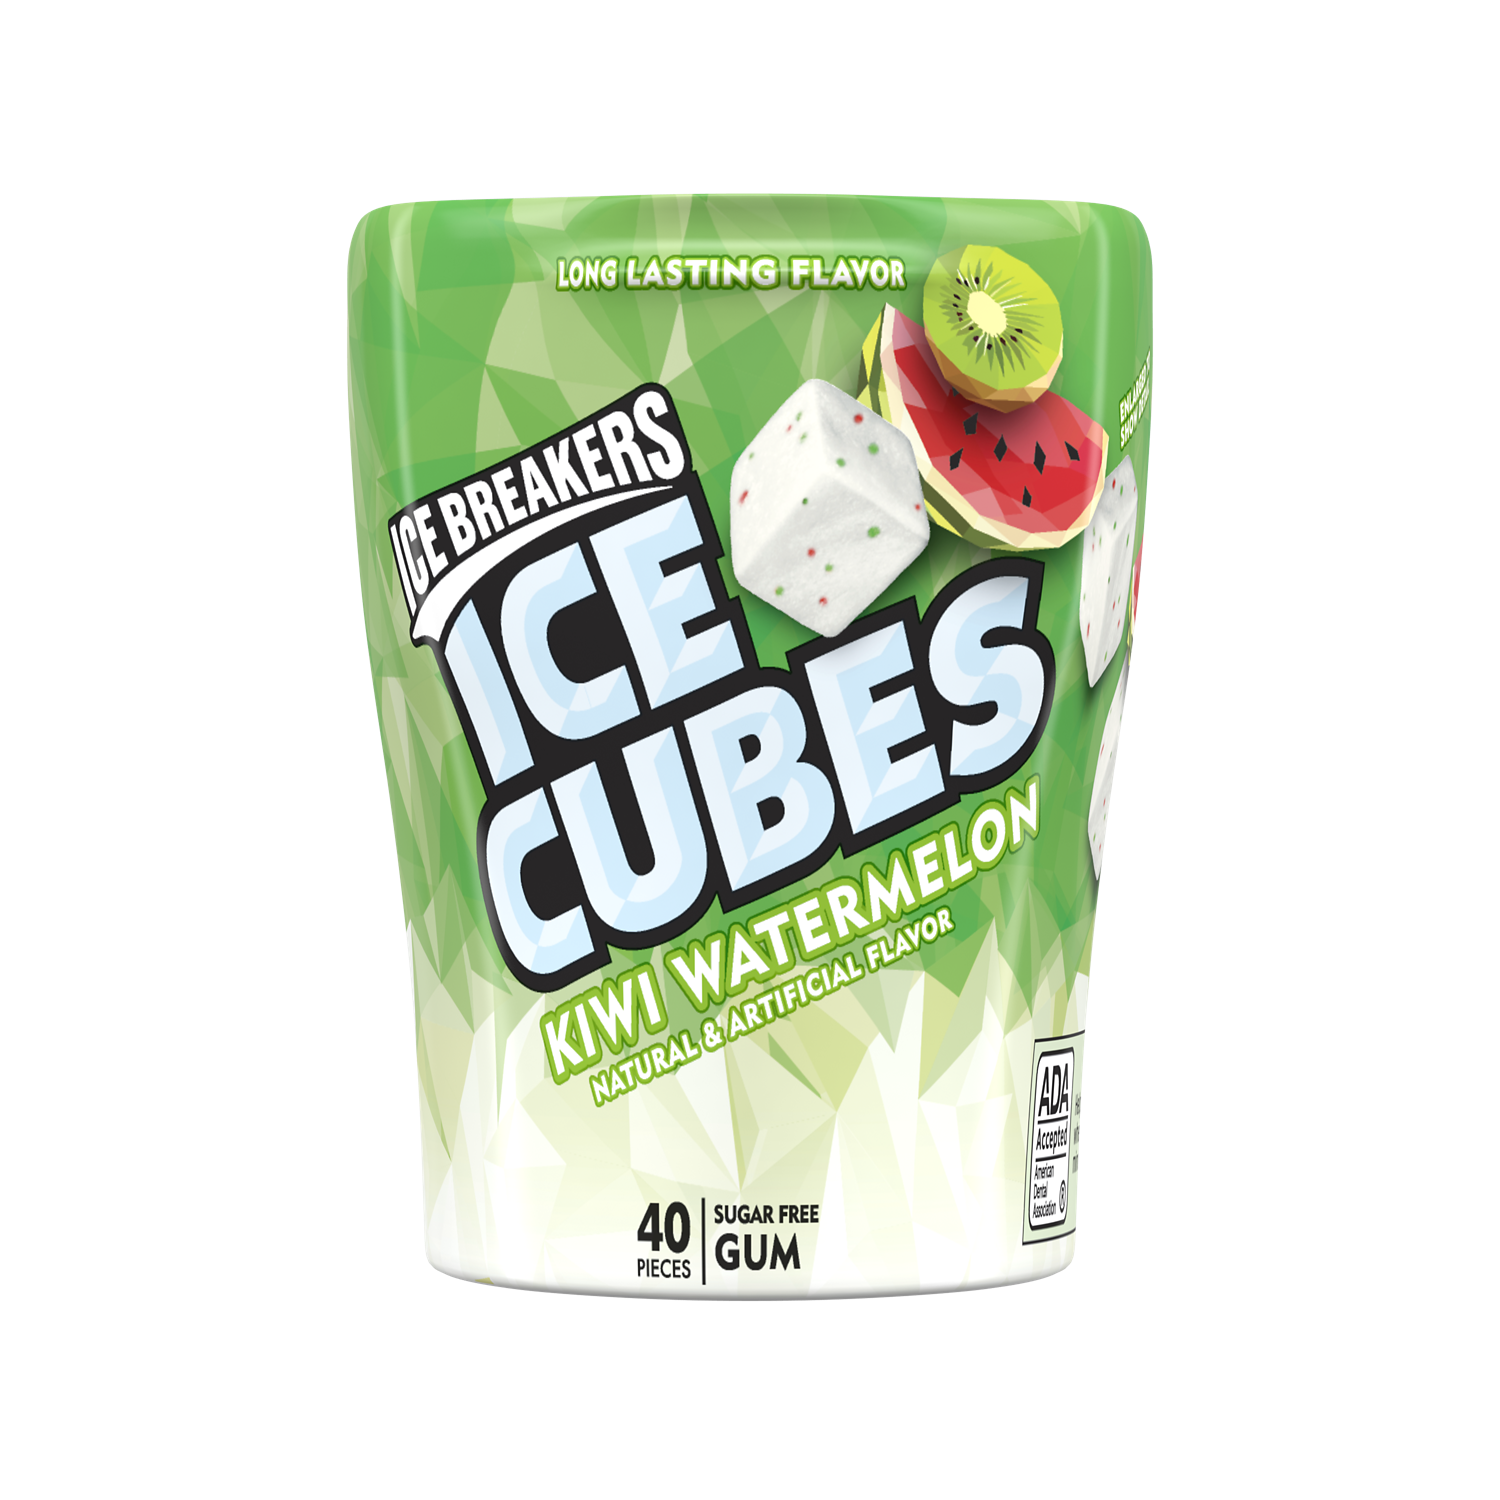 ICE BREAKERS ICE CUBES Kiwi Watermelon Sugar Free Gum, 3.24 oz bottle, 40 pieces - Front of Package